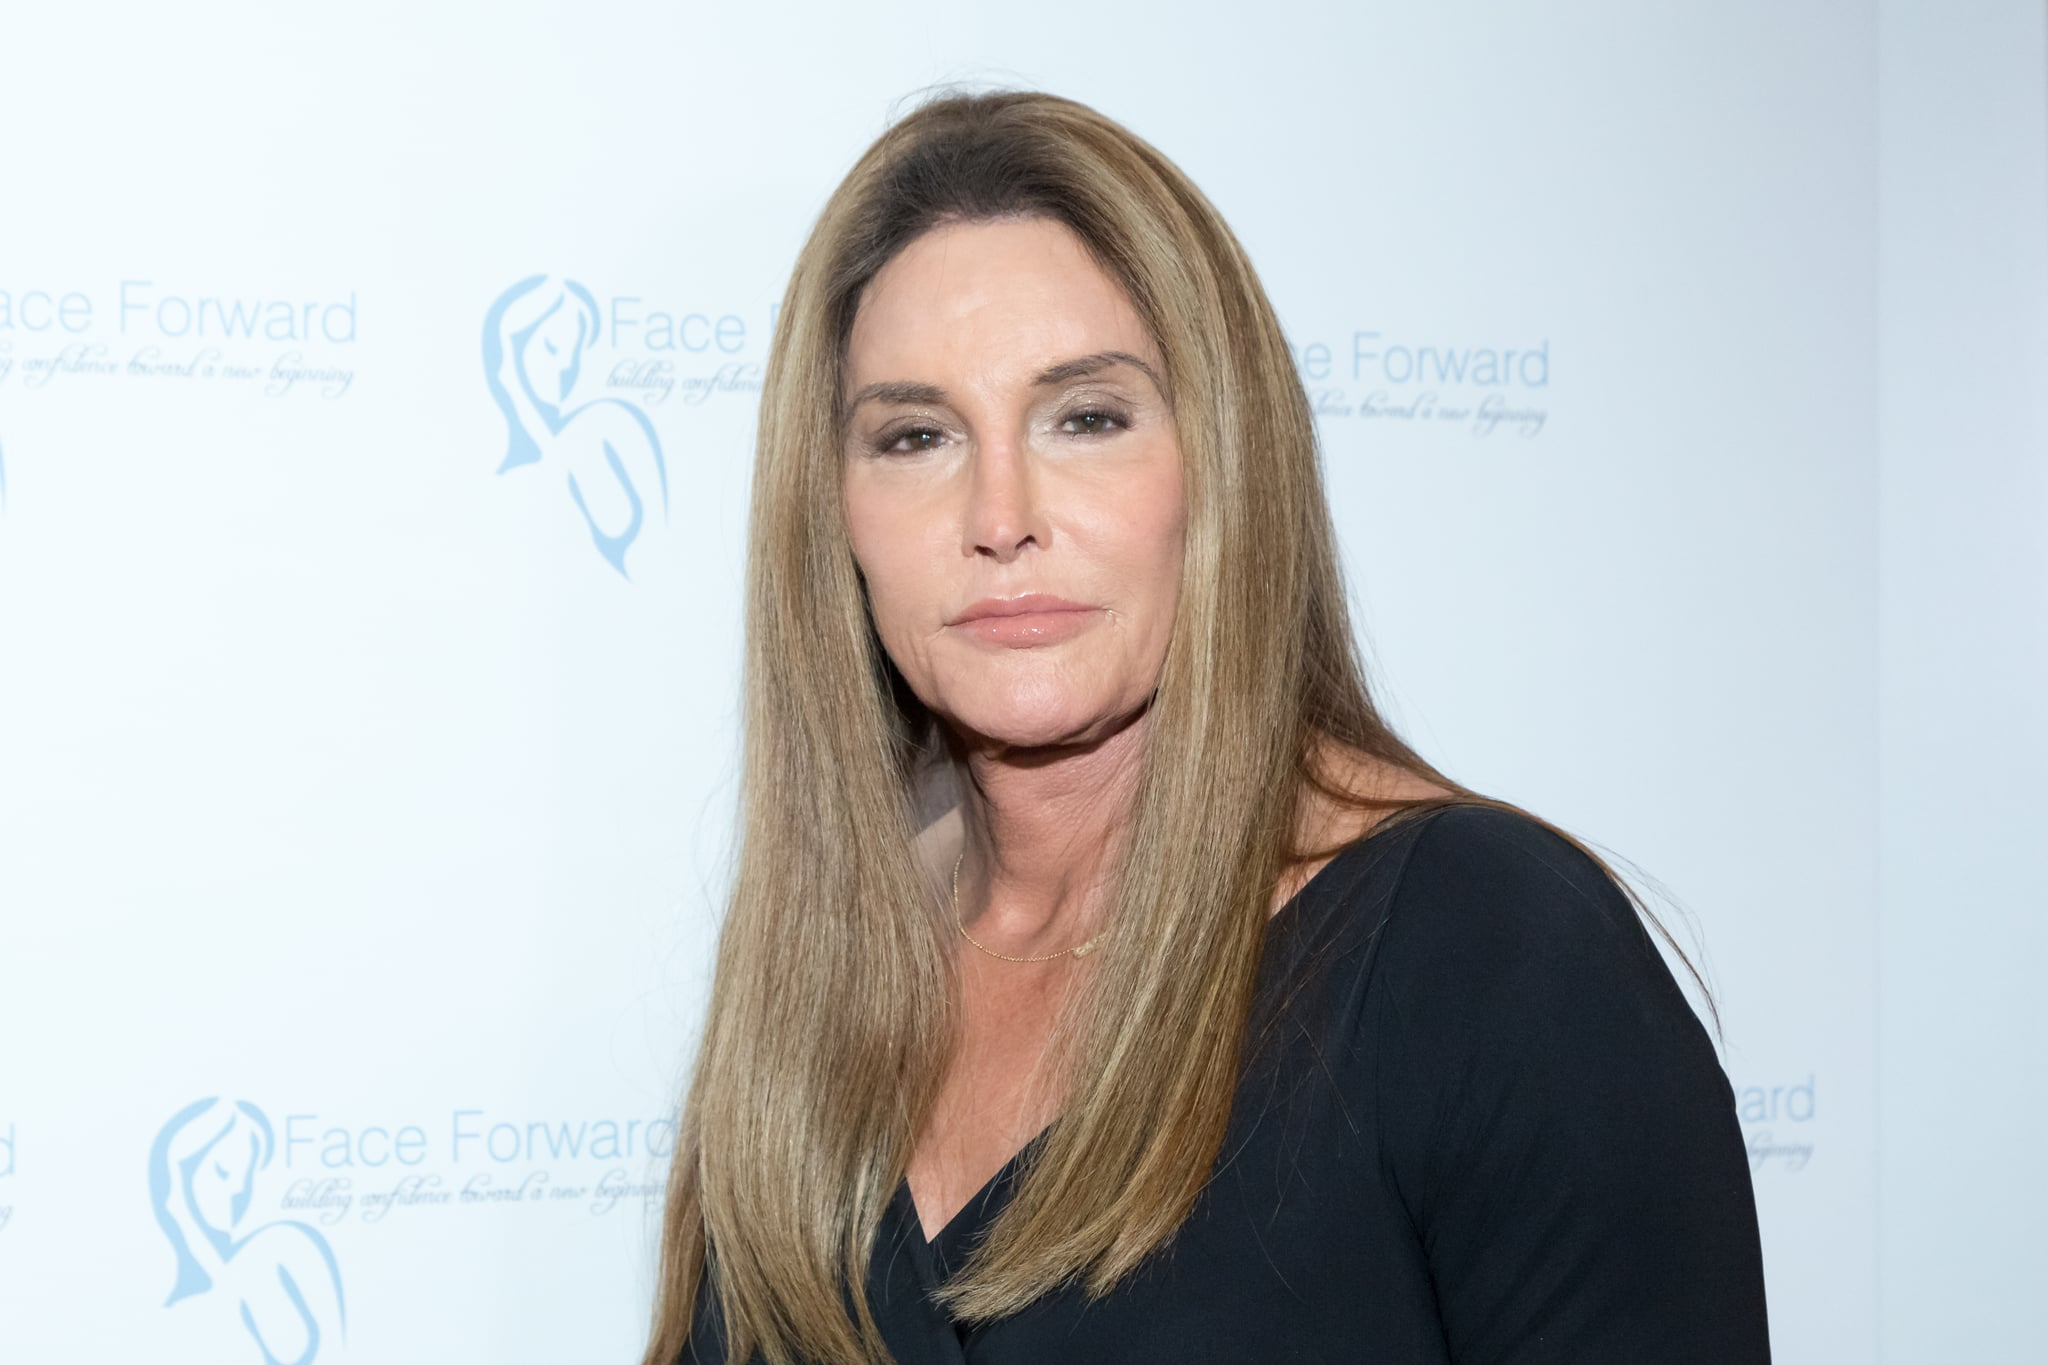 BEVERLY HILLS, CALIFORNIA - SEPTEMBER 22:  TV Personality Caitlyn Jenner attends the Face Forward's 10th Annual